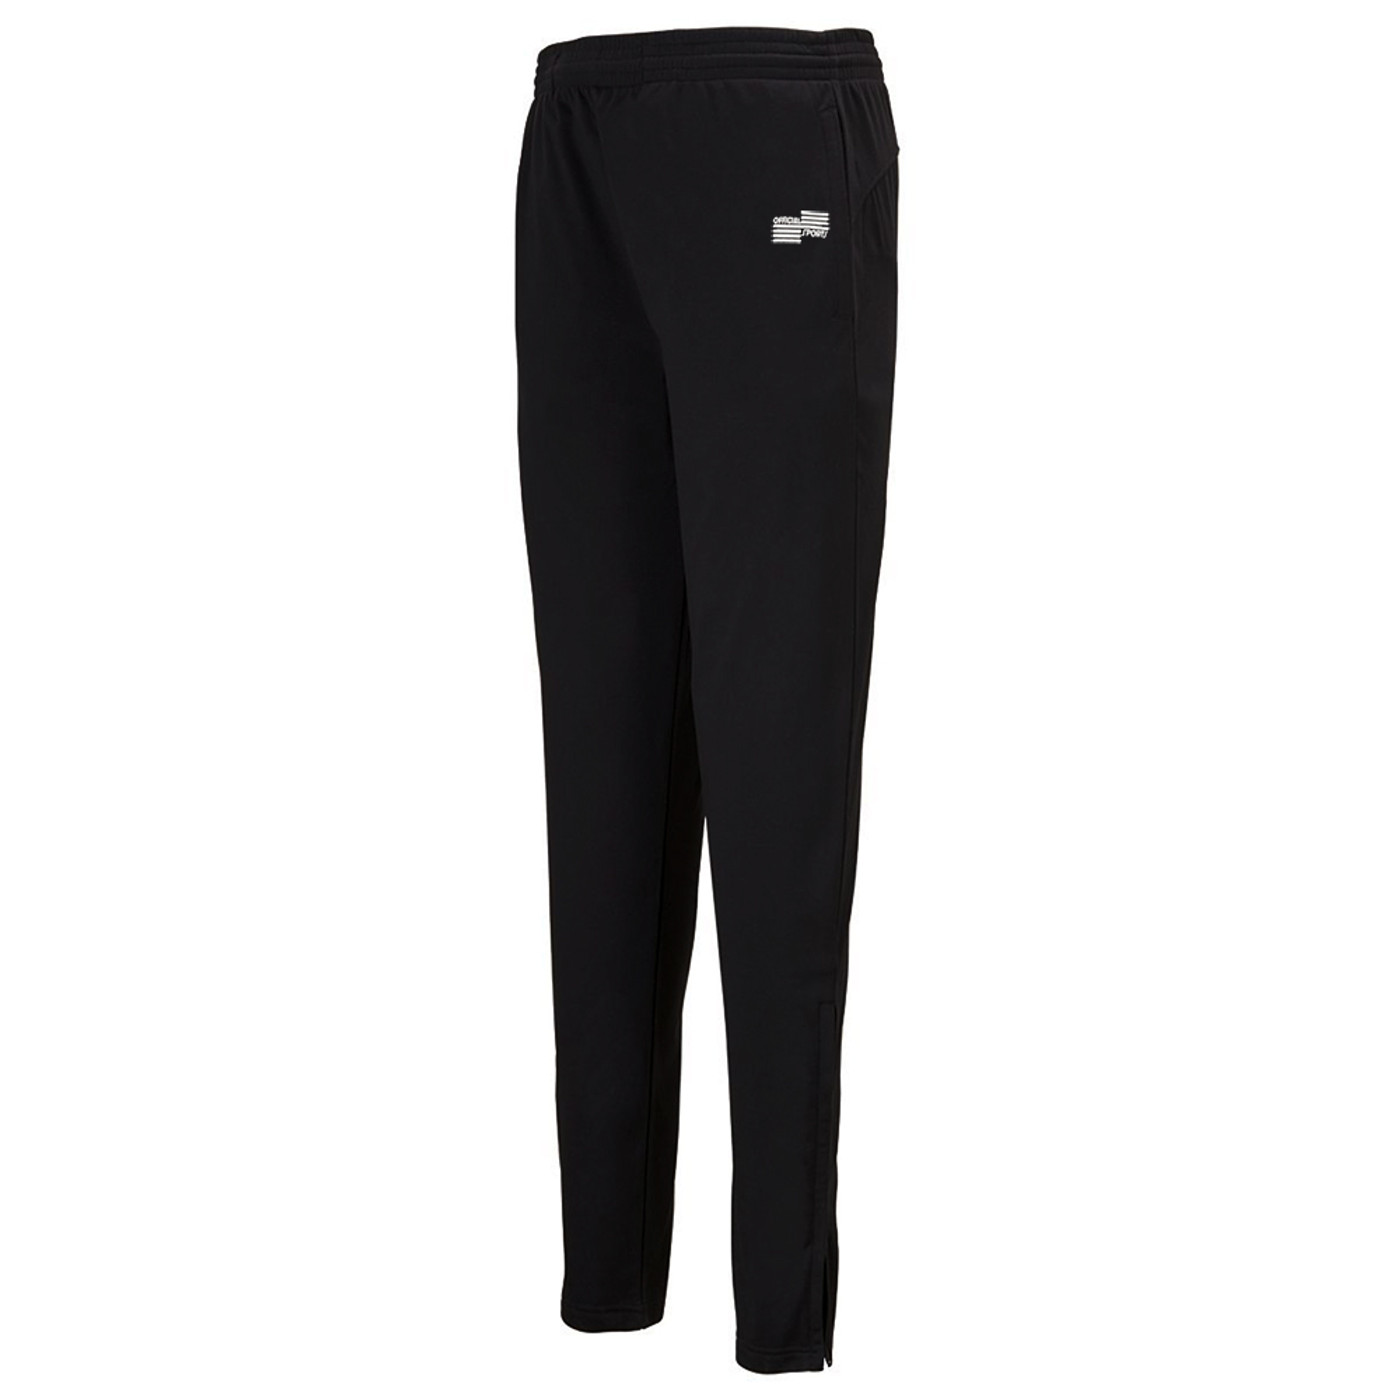 1270PN NISOA Tapered Warm-Up Pant